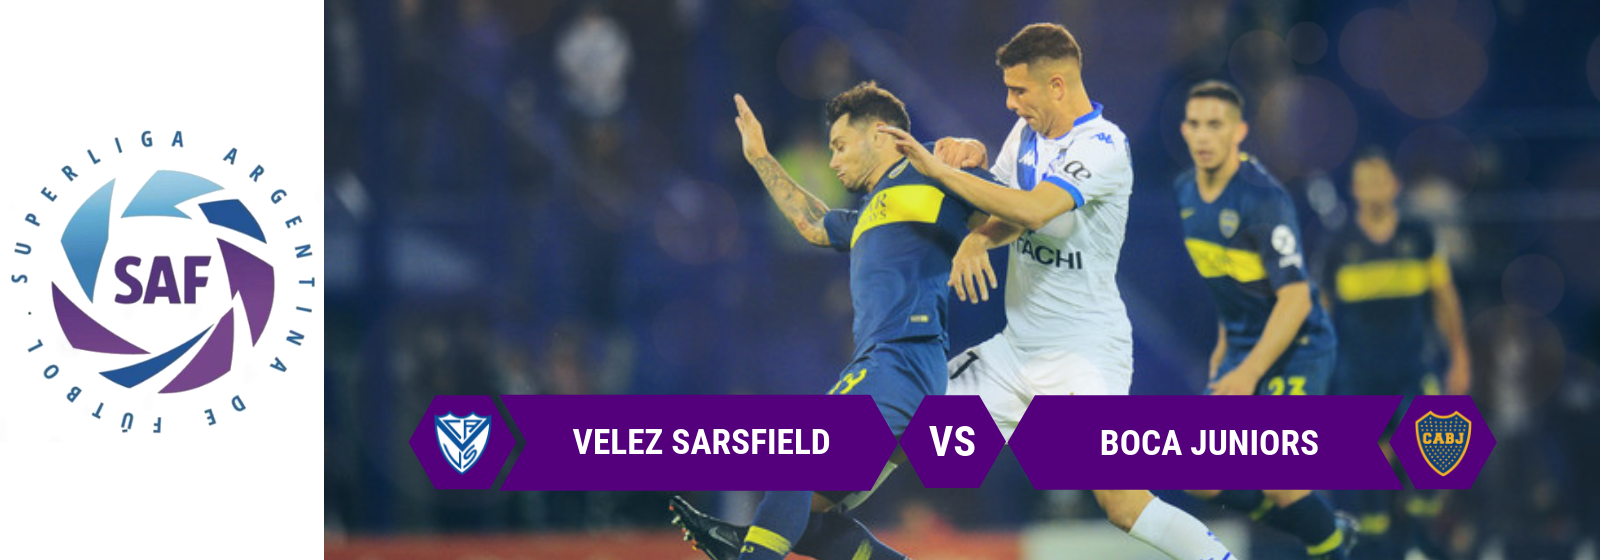 Velez vs Boca Asianodds